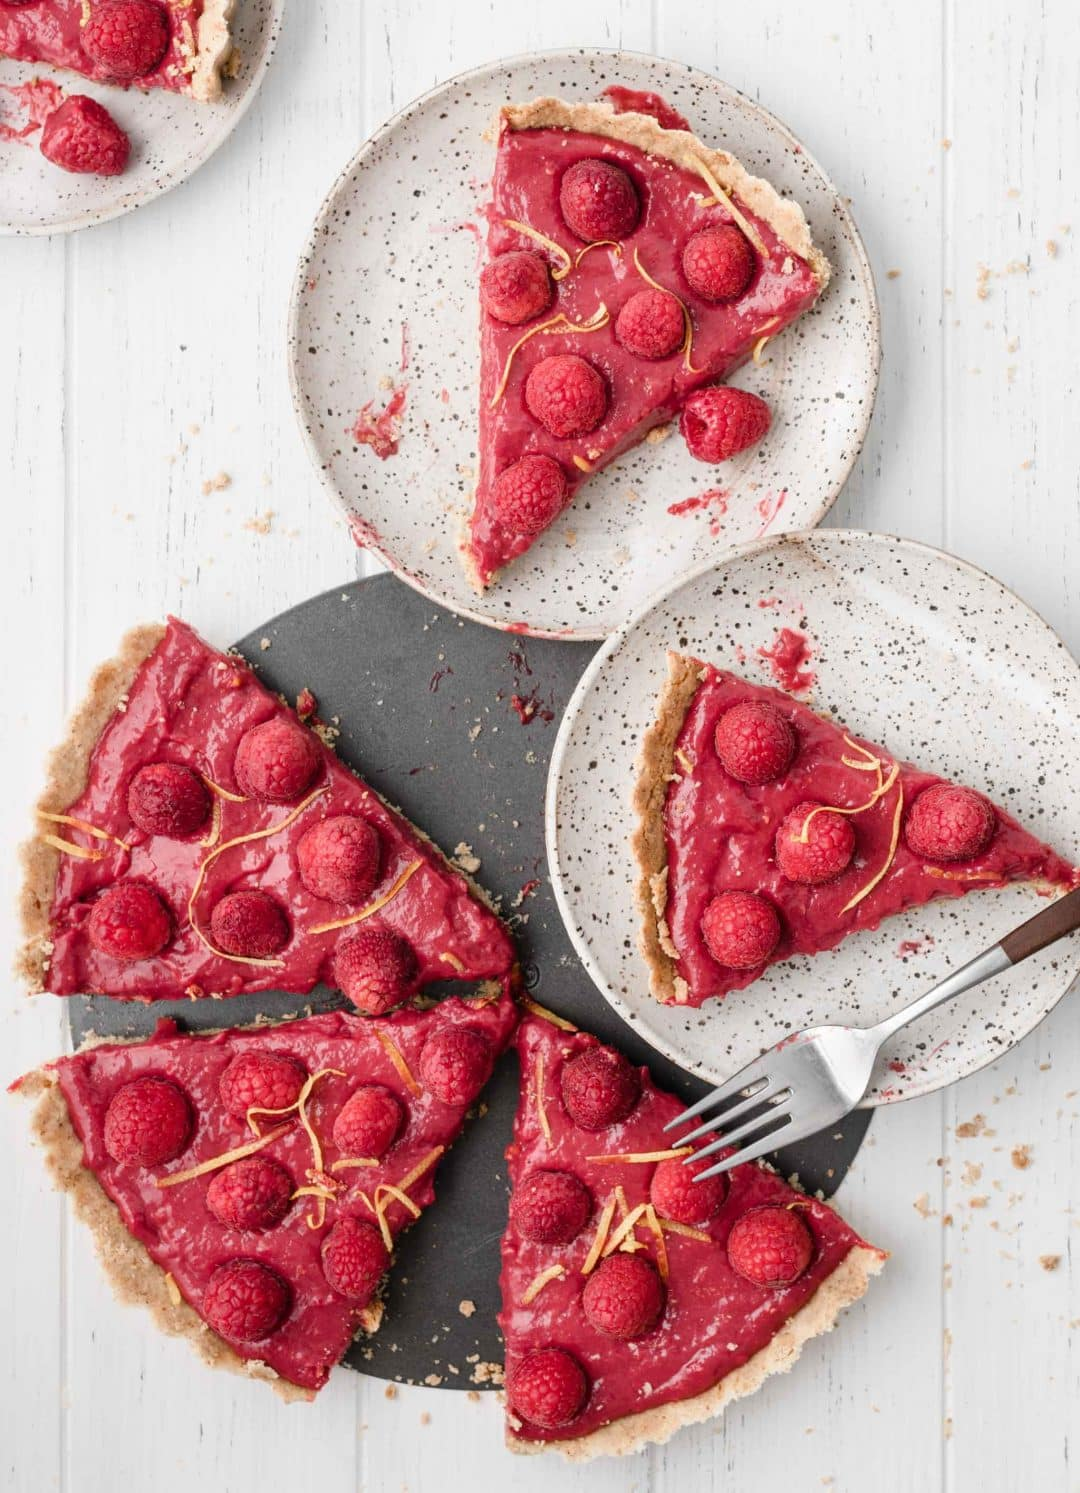 slices of raspberry lemon tart